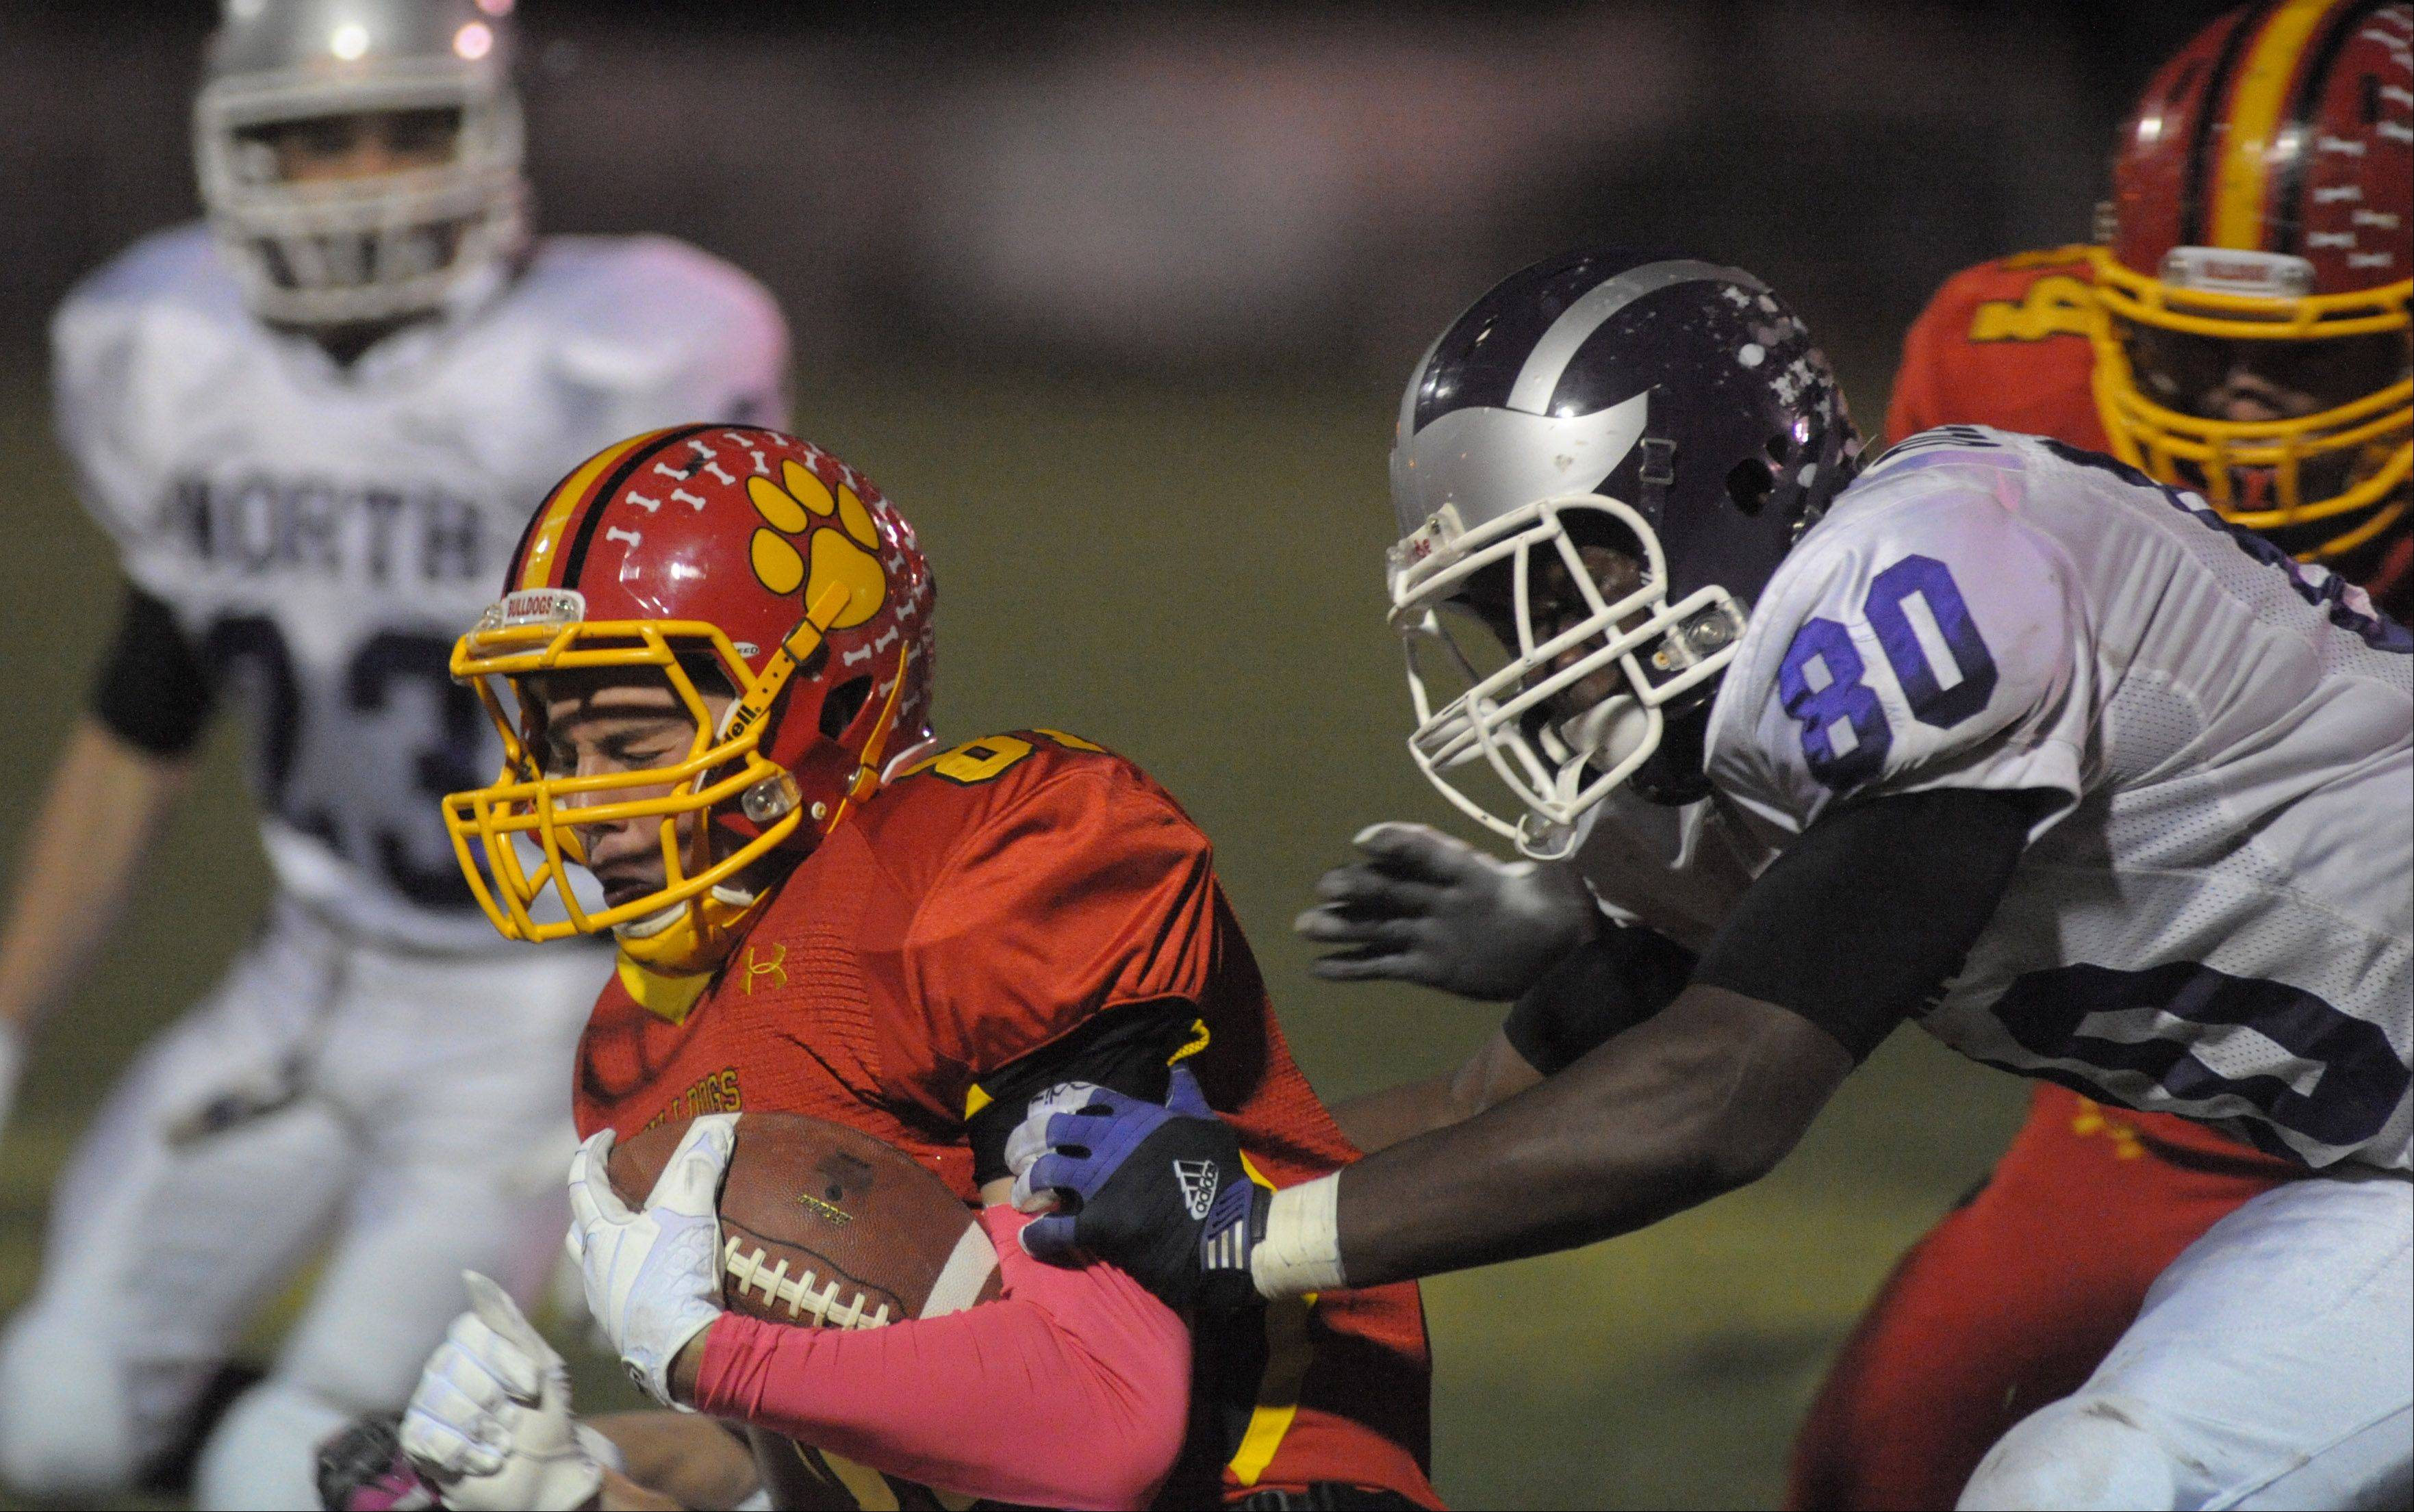 Downers Grove North's Richard Olekanma takes down Batavia's Jason Toth in the fourth quarter of playoff game on Friday, October 26.